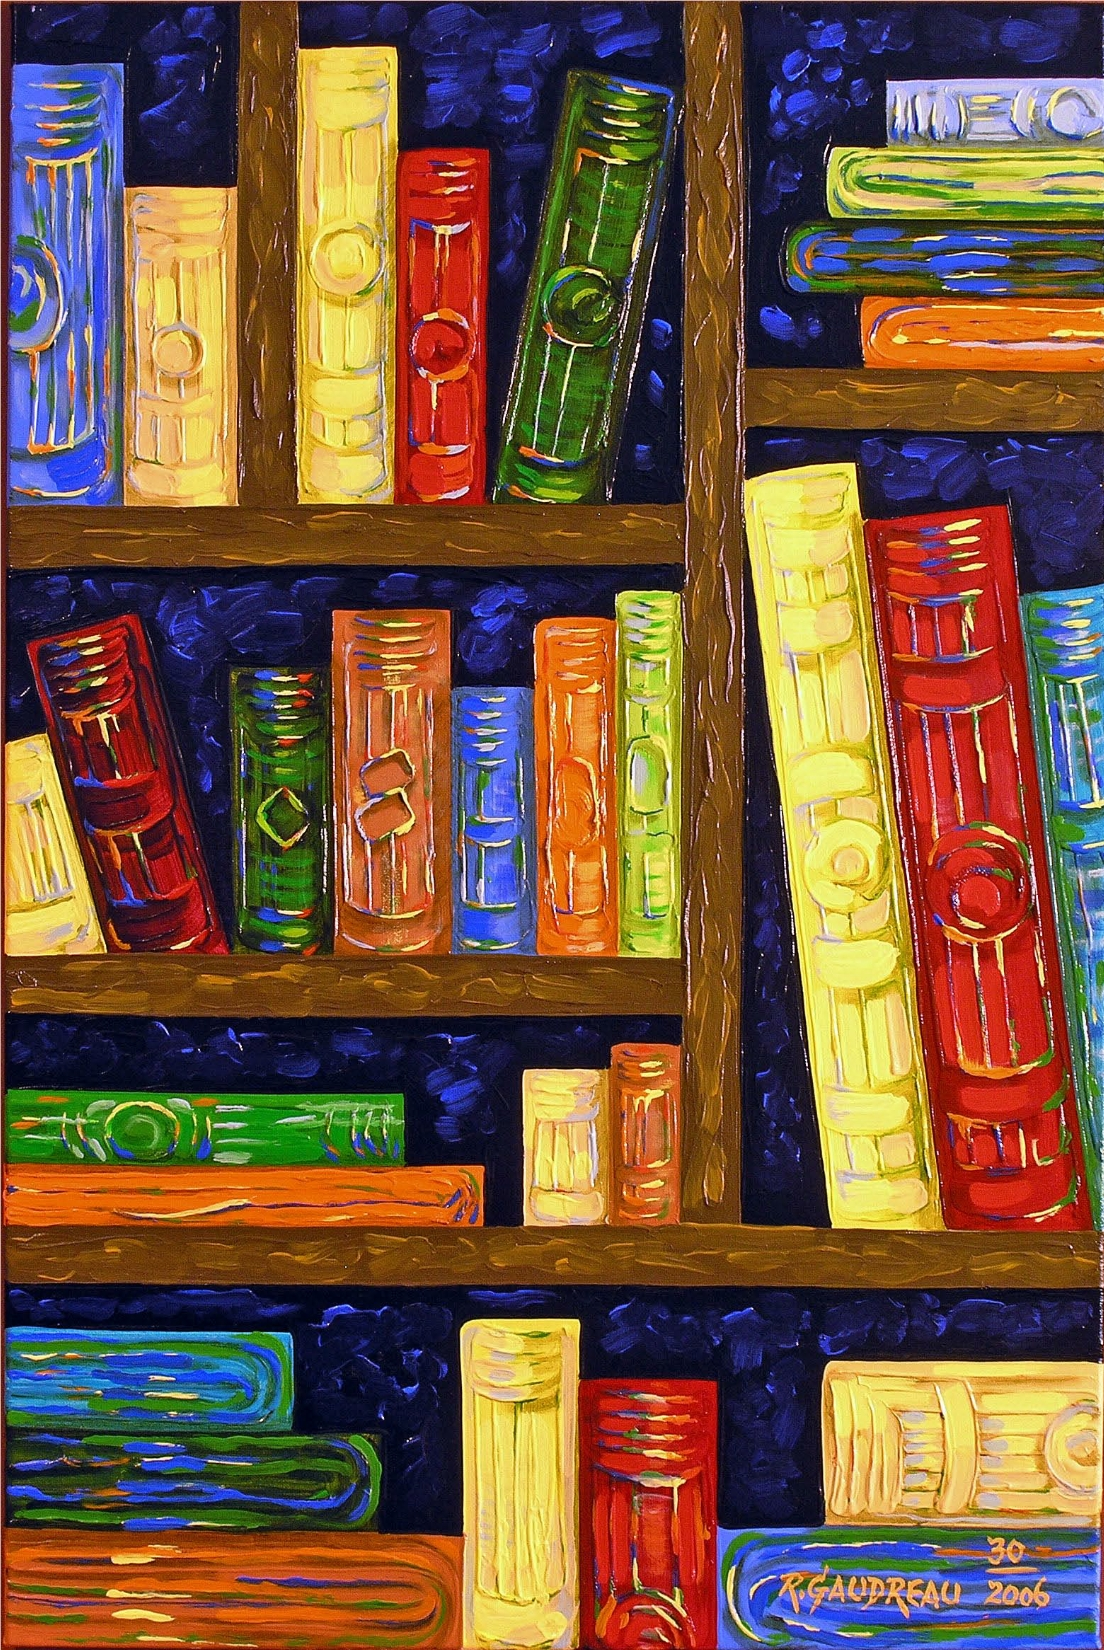 30  Books 2006 oil on canvas 36 x 24 inches